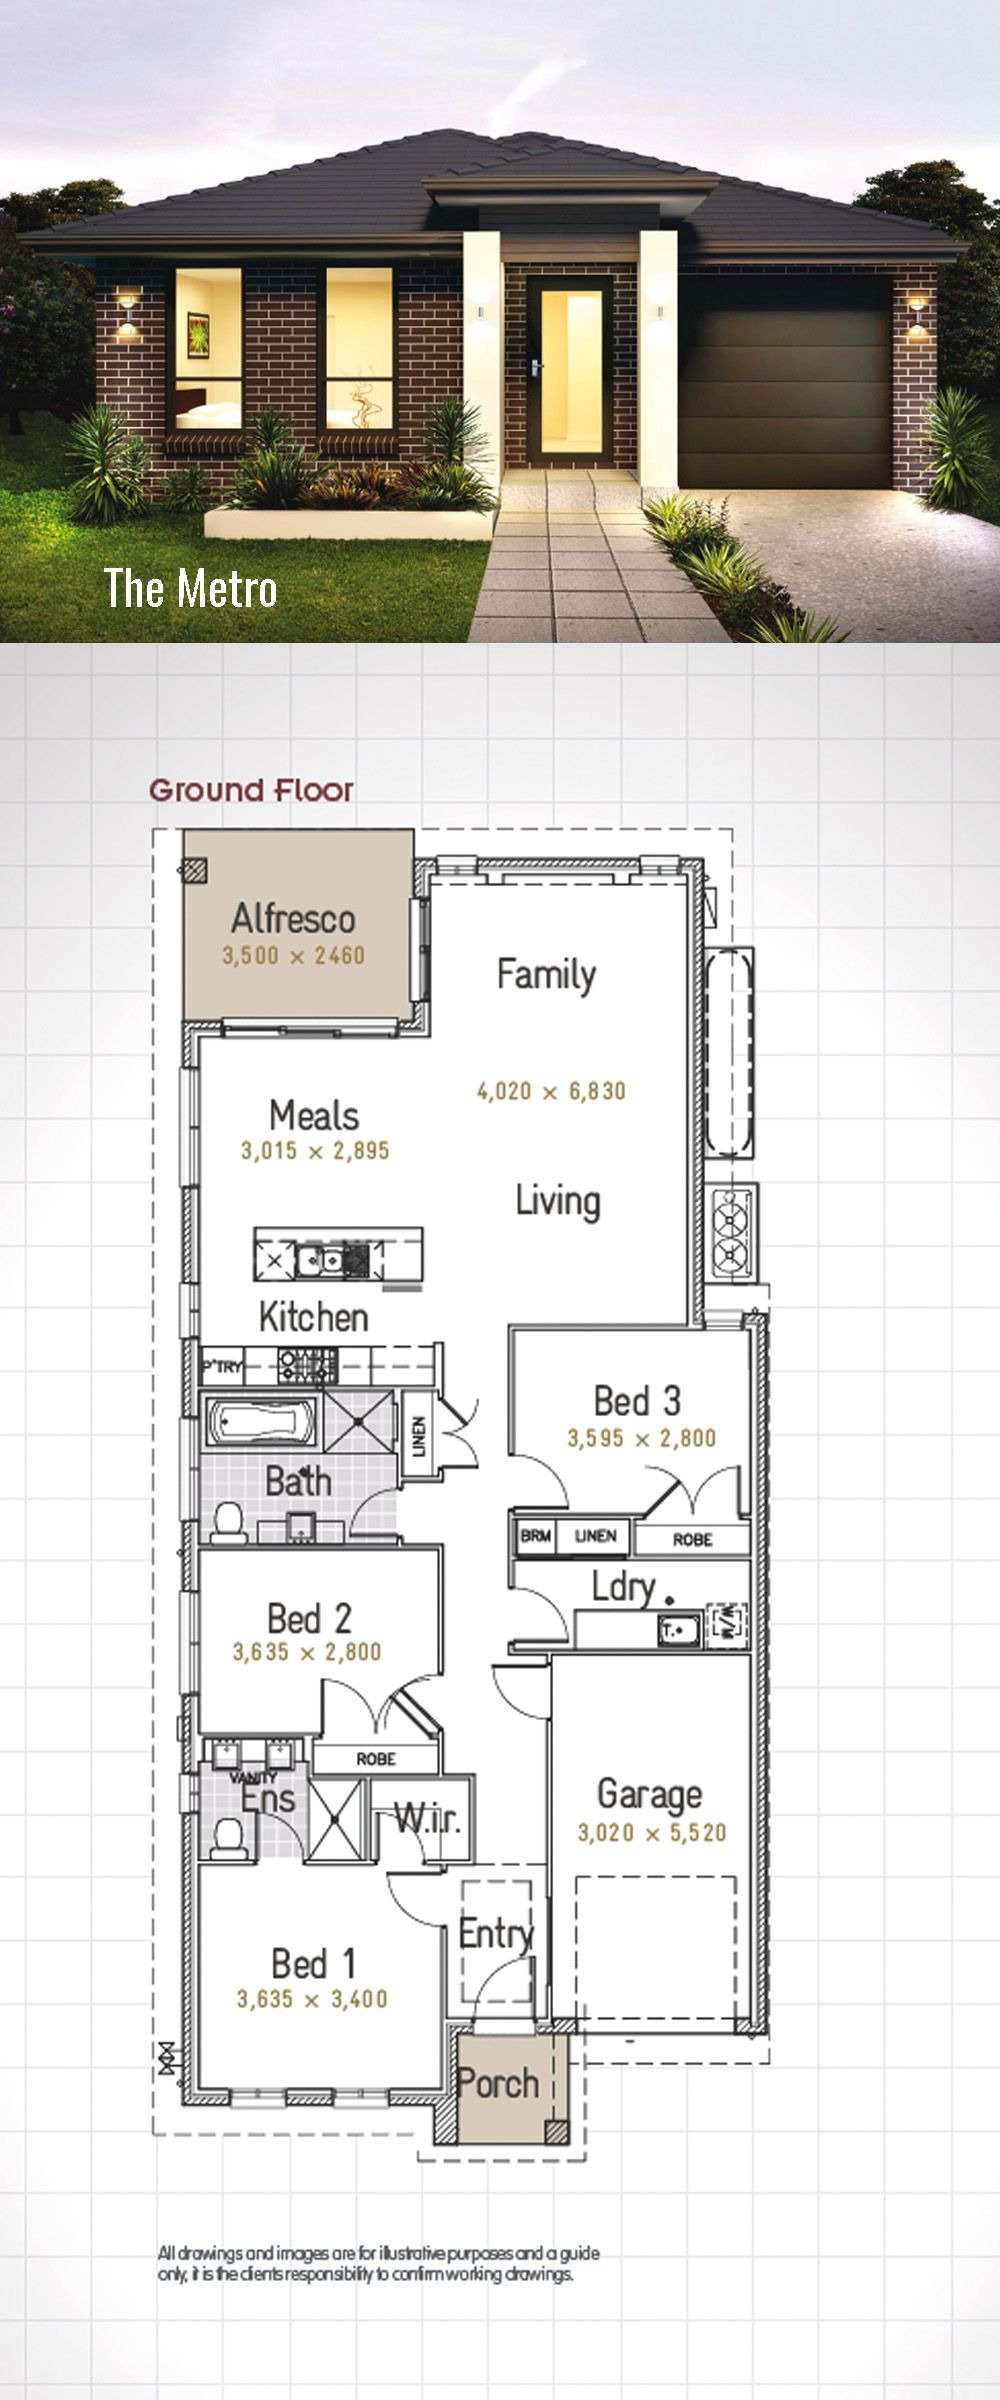 One Bedroom House Plans with Garage New Metro 17